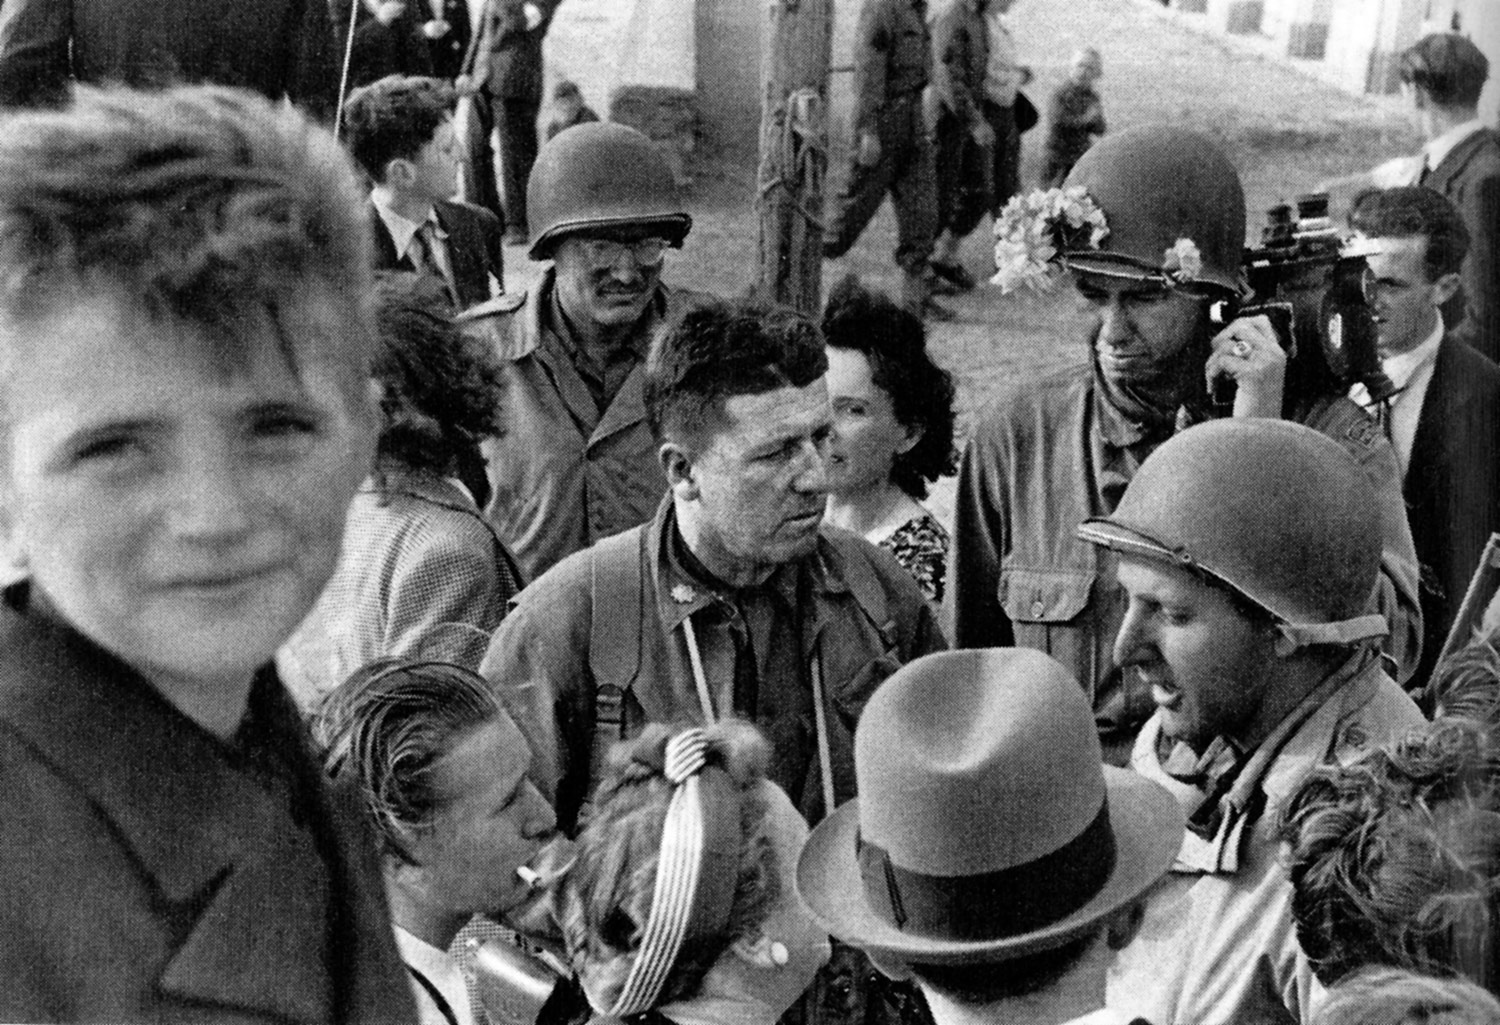 Filmmaker George Stevens (center) faced the realities of the Holocaust in the aftermath of World War II. Photo: US National Archive. Courtesy of Bloomsbury Publishing